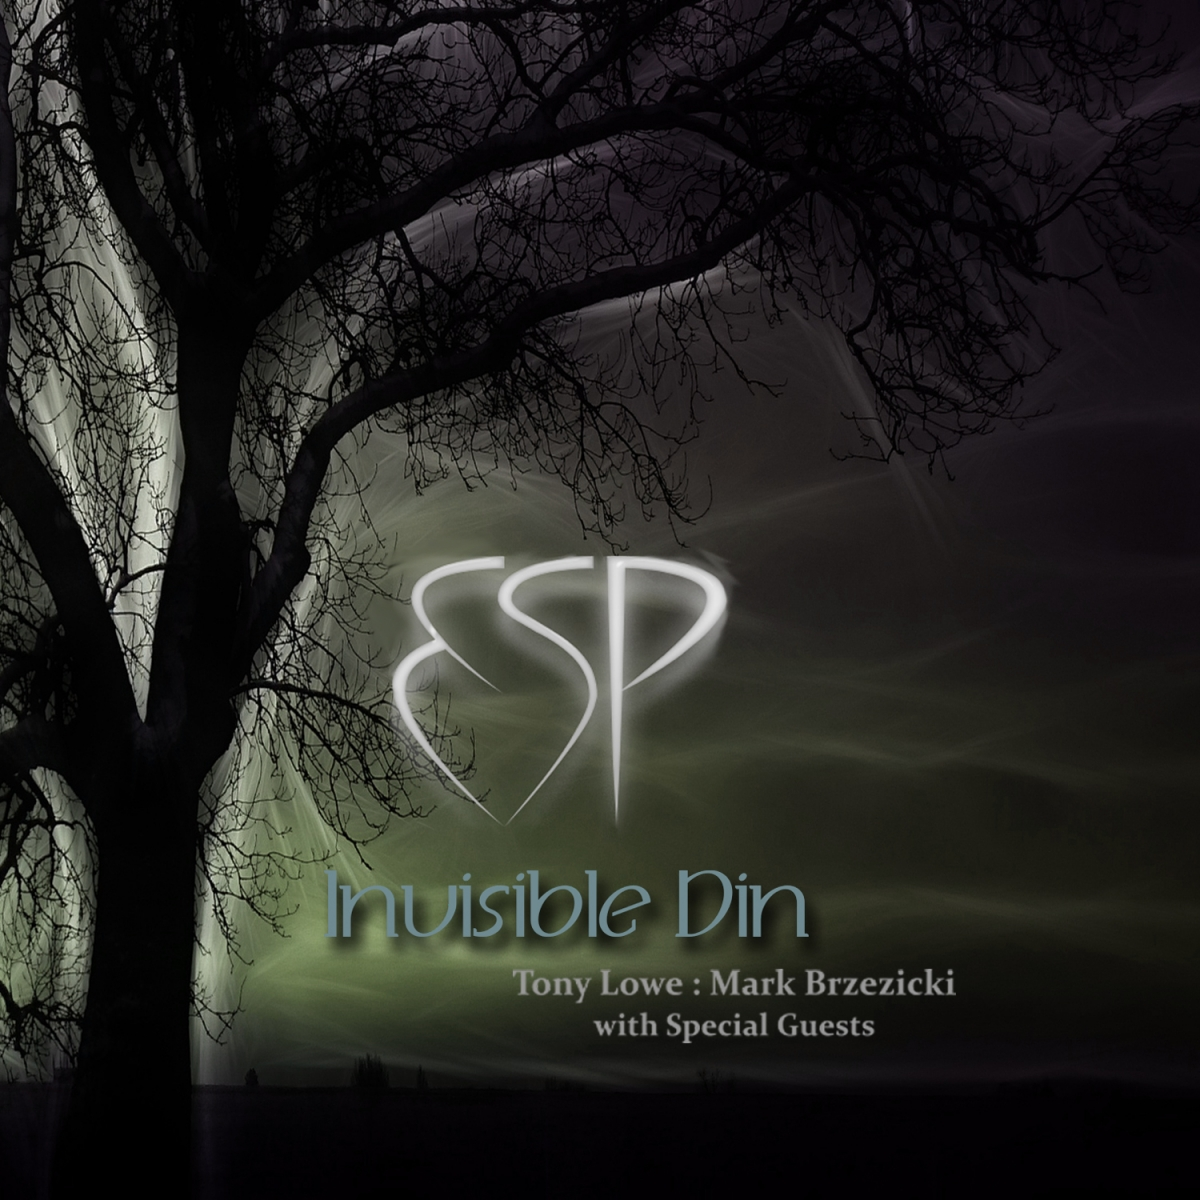 Lowe & Brzezicki's ESP - Invisible Din  - ESP Project - 2016